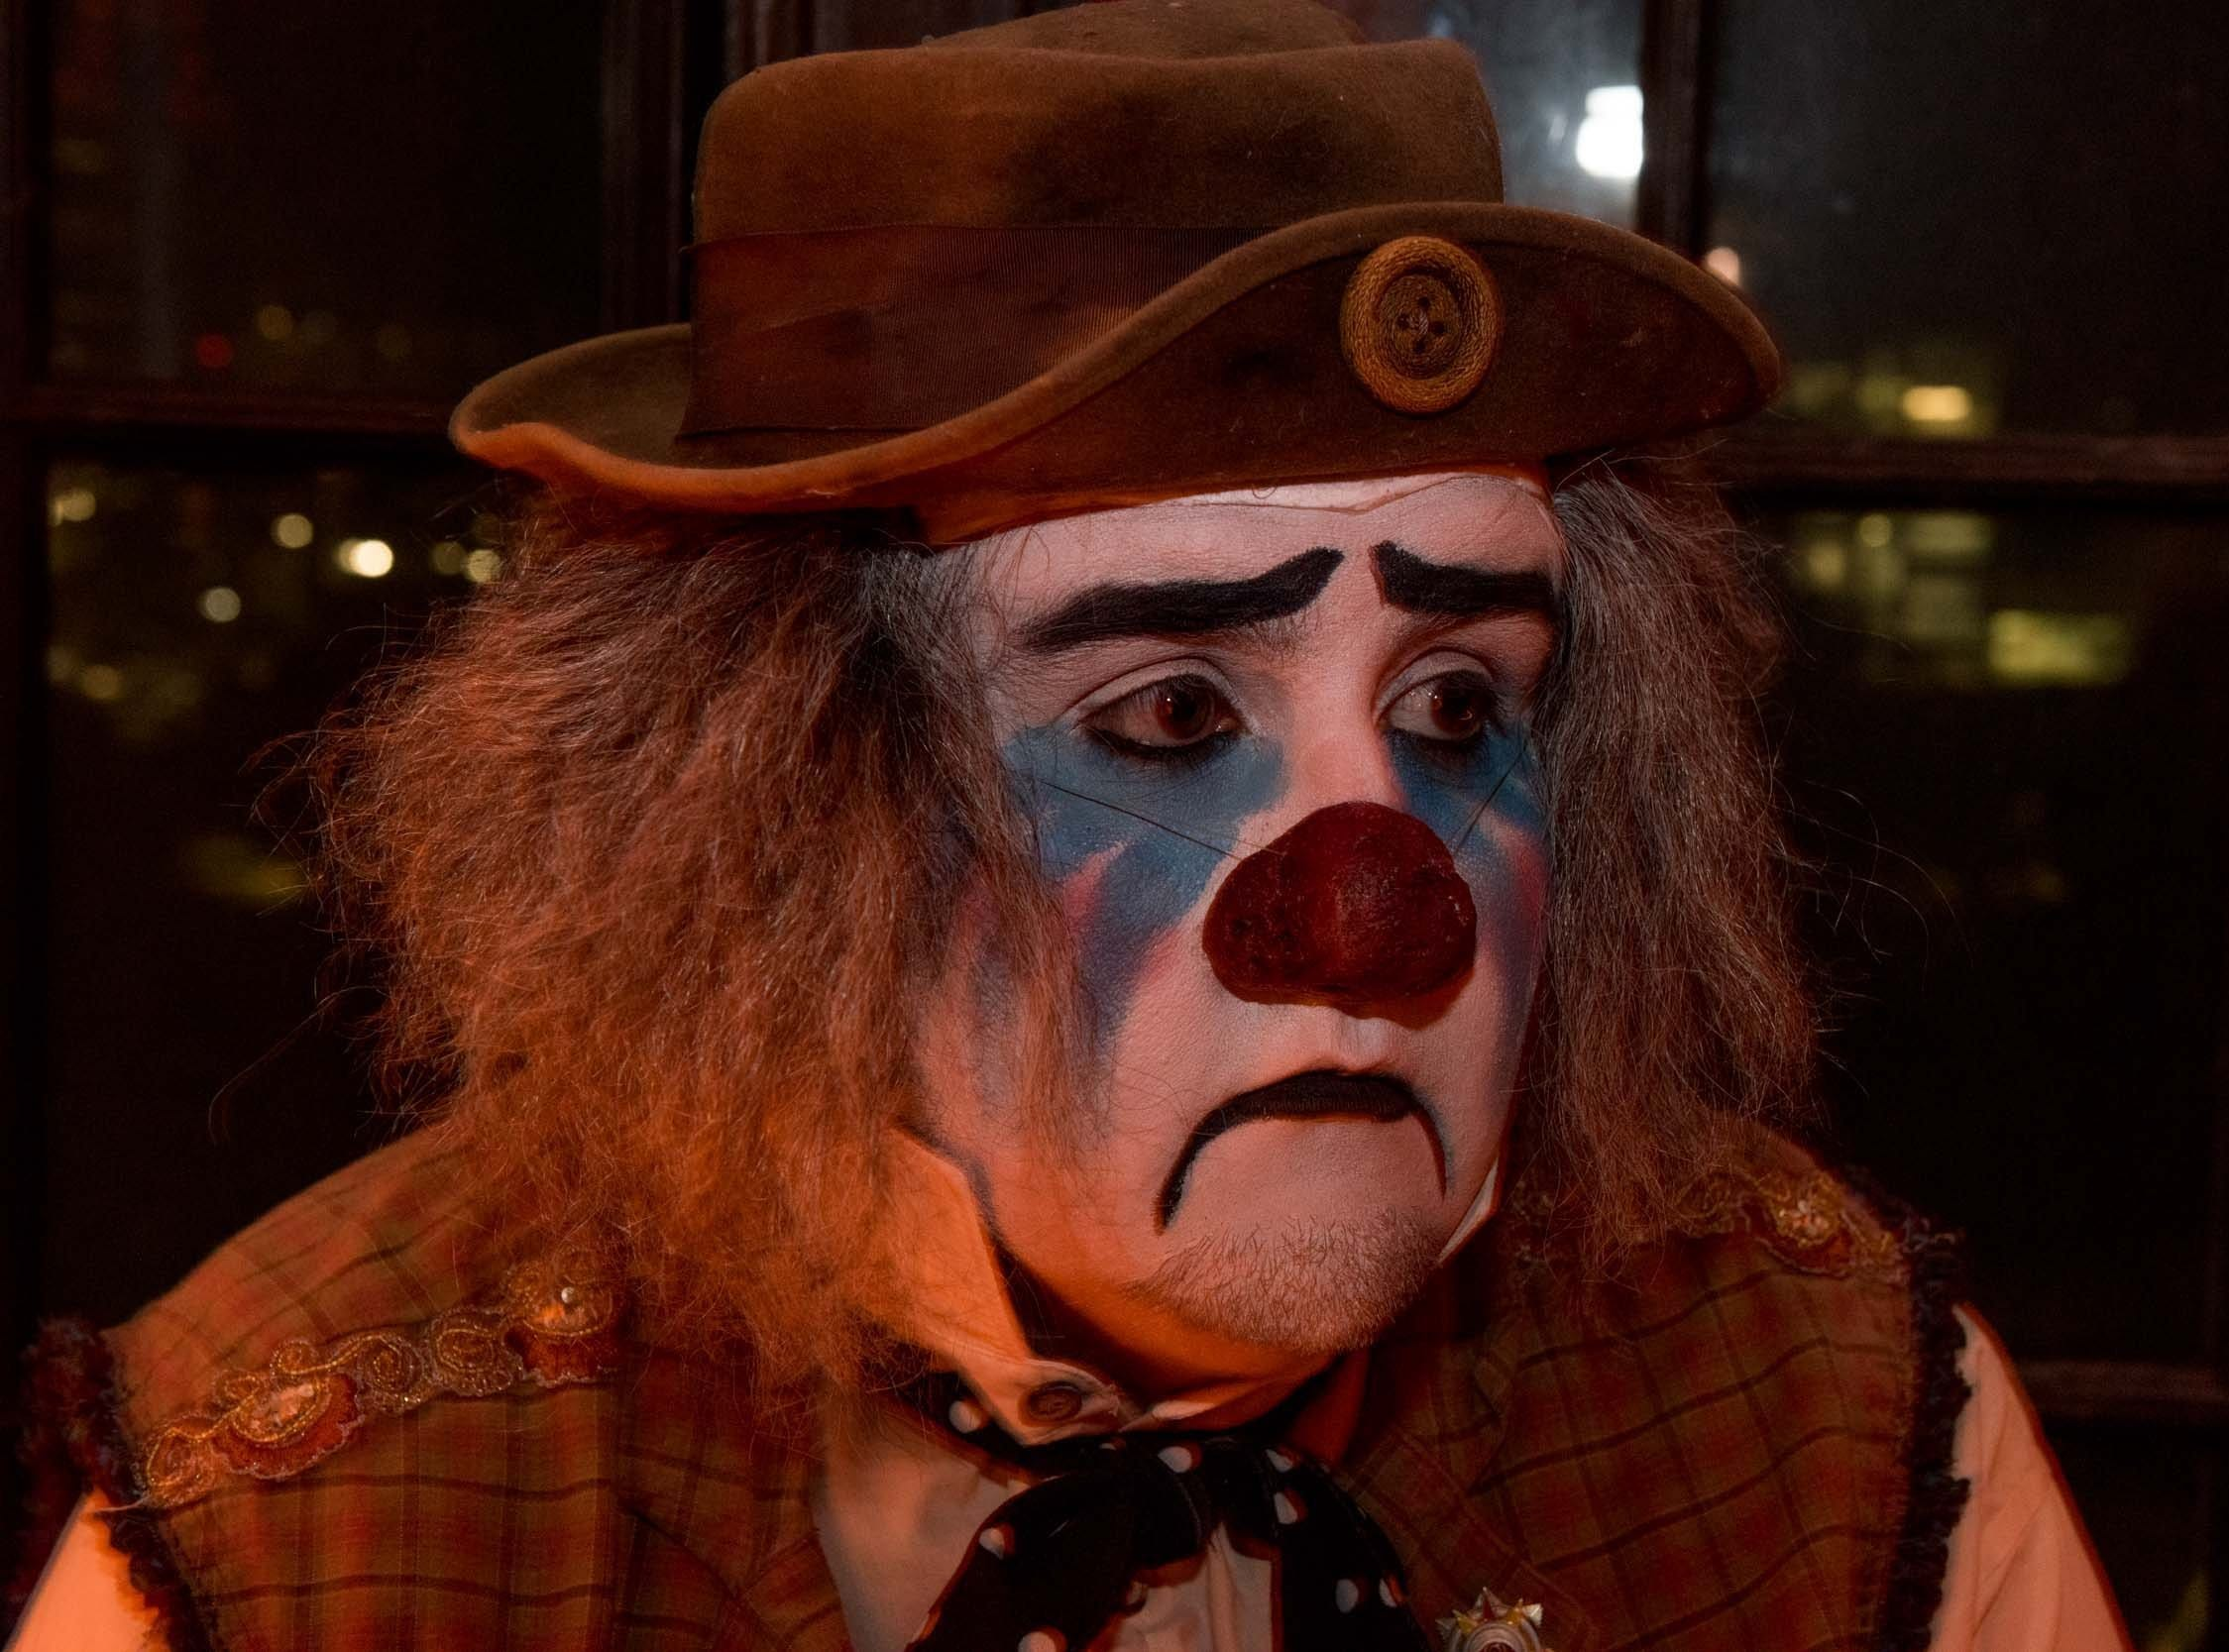 Cecil the Sad Clown during Theatre Bizarre at the Masonic Temple on October 13, 2018.